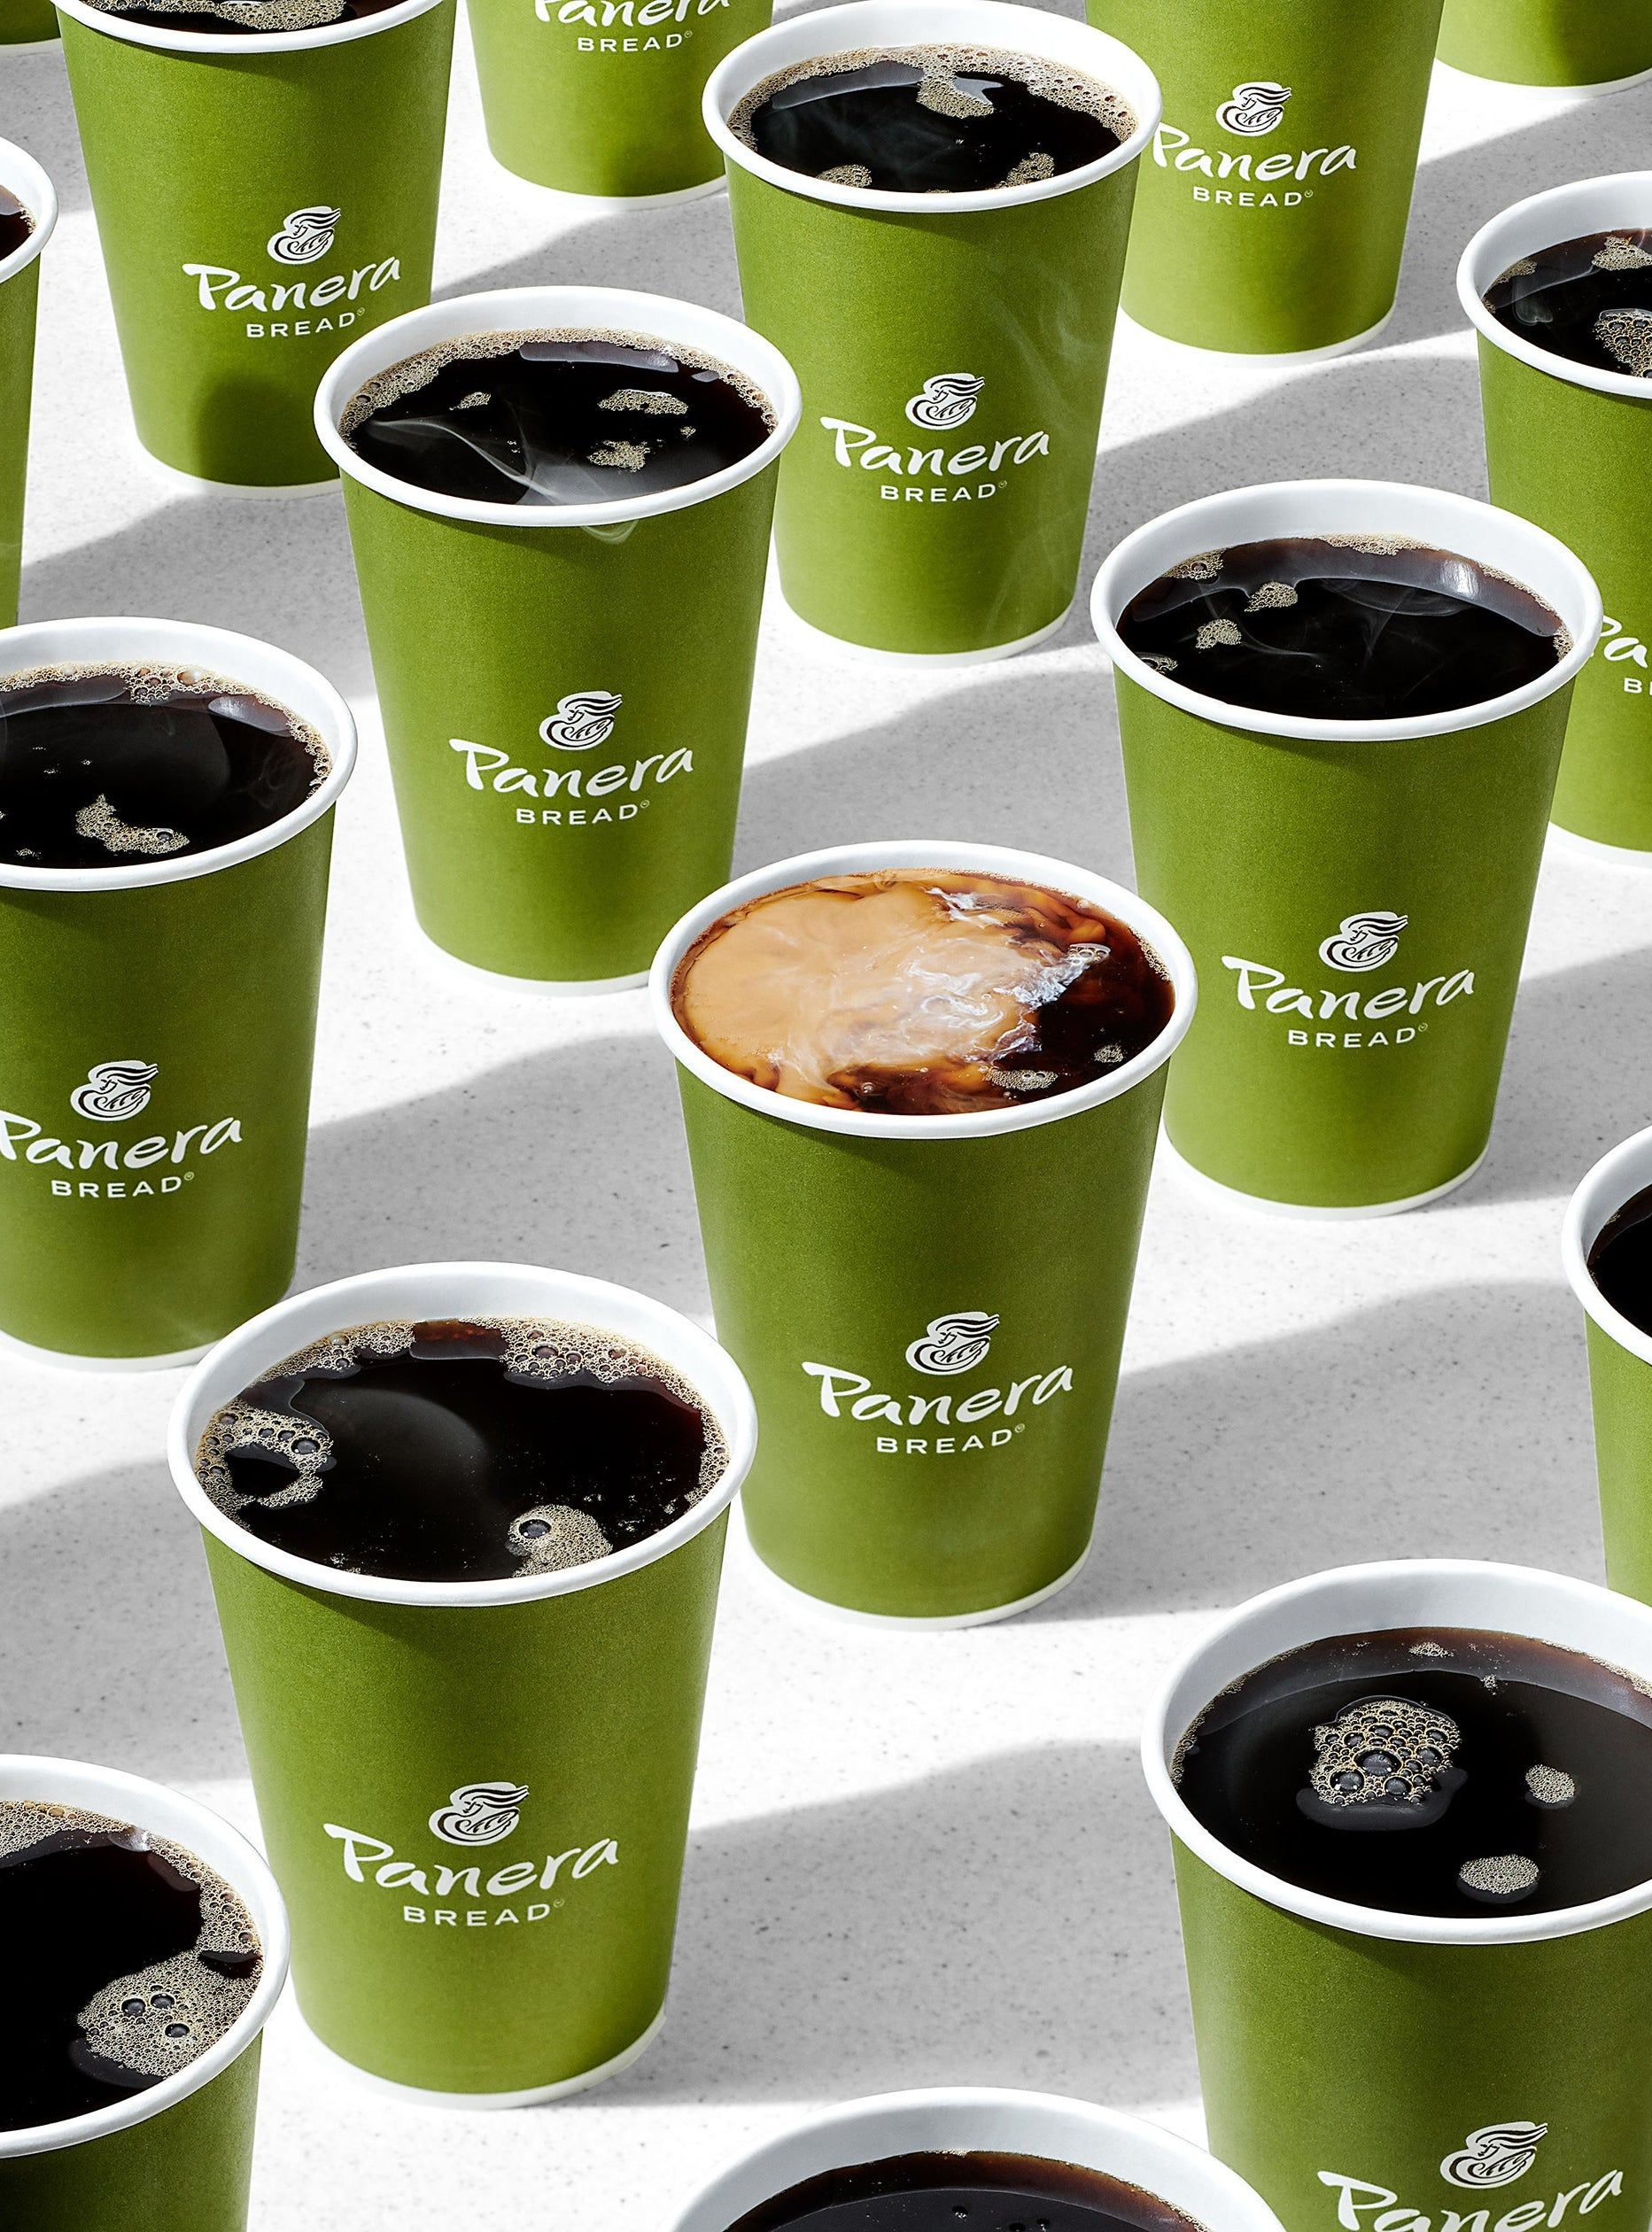 Coffee Subscriptions Are A Thing Now & Panera's Deal Is